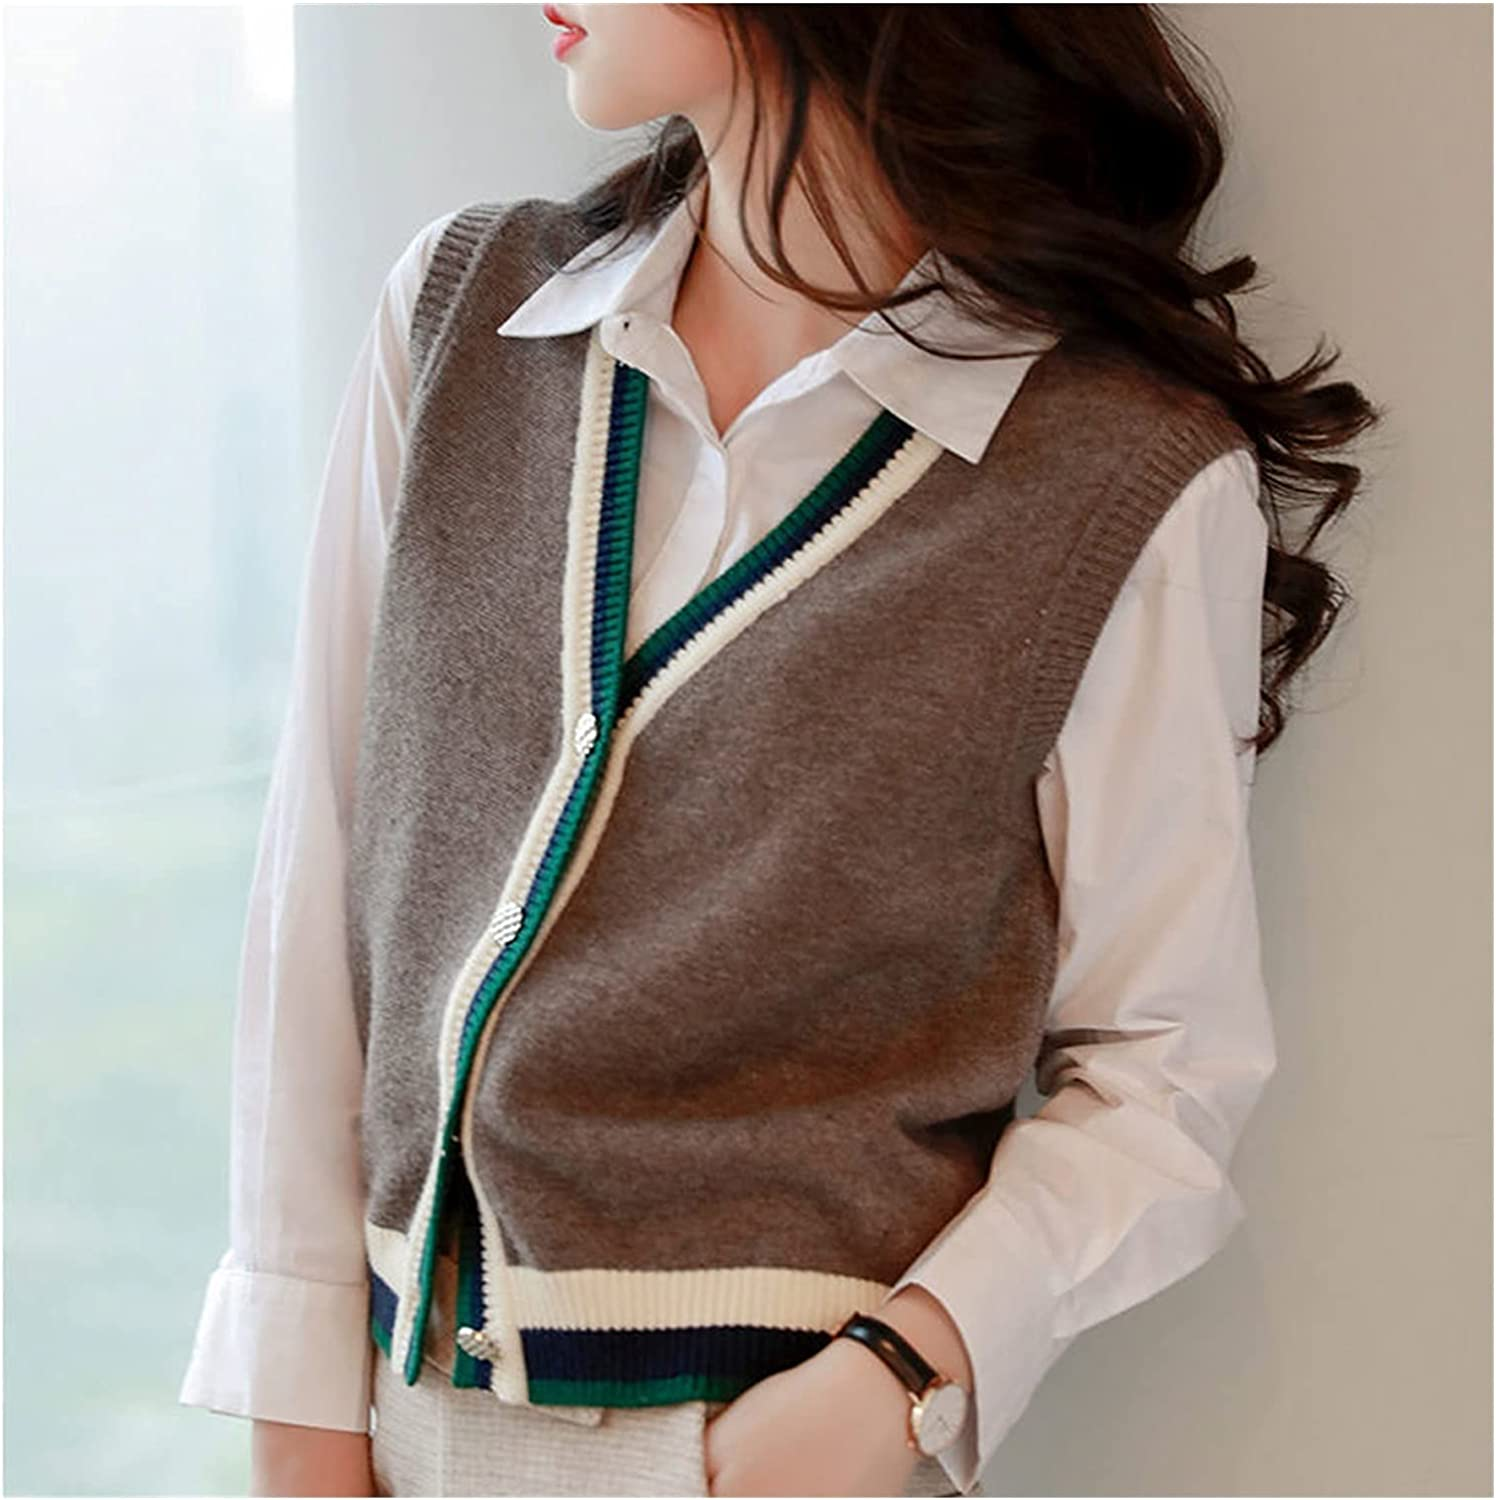 EEKLSJ Sweater Vest, Blouse Loose Trendy Korean Style Sleeveless Knitted V-Neck All-Match Female Coats Simple Leisure Outwear (Color : A, Size : XXL Code)